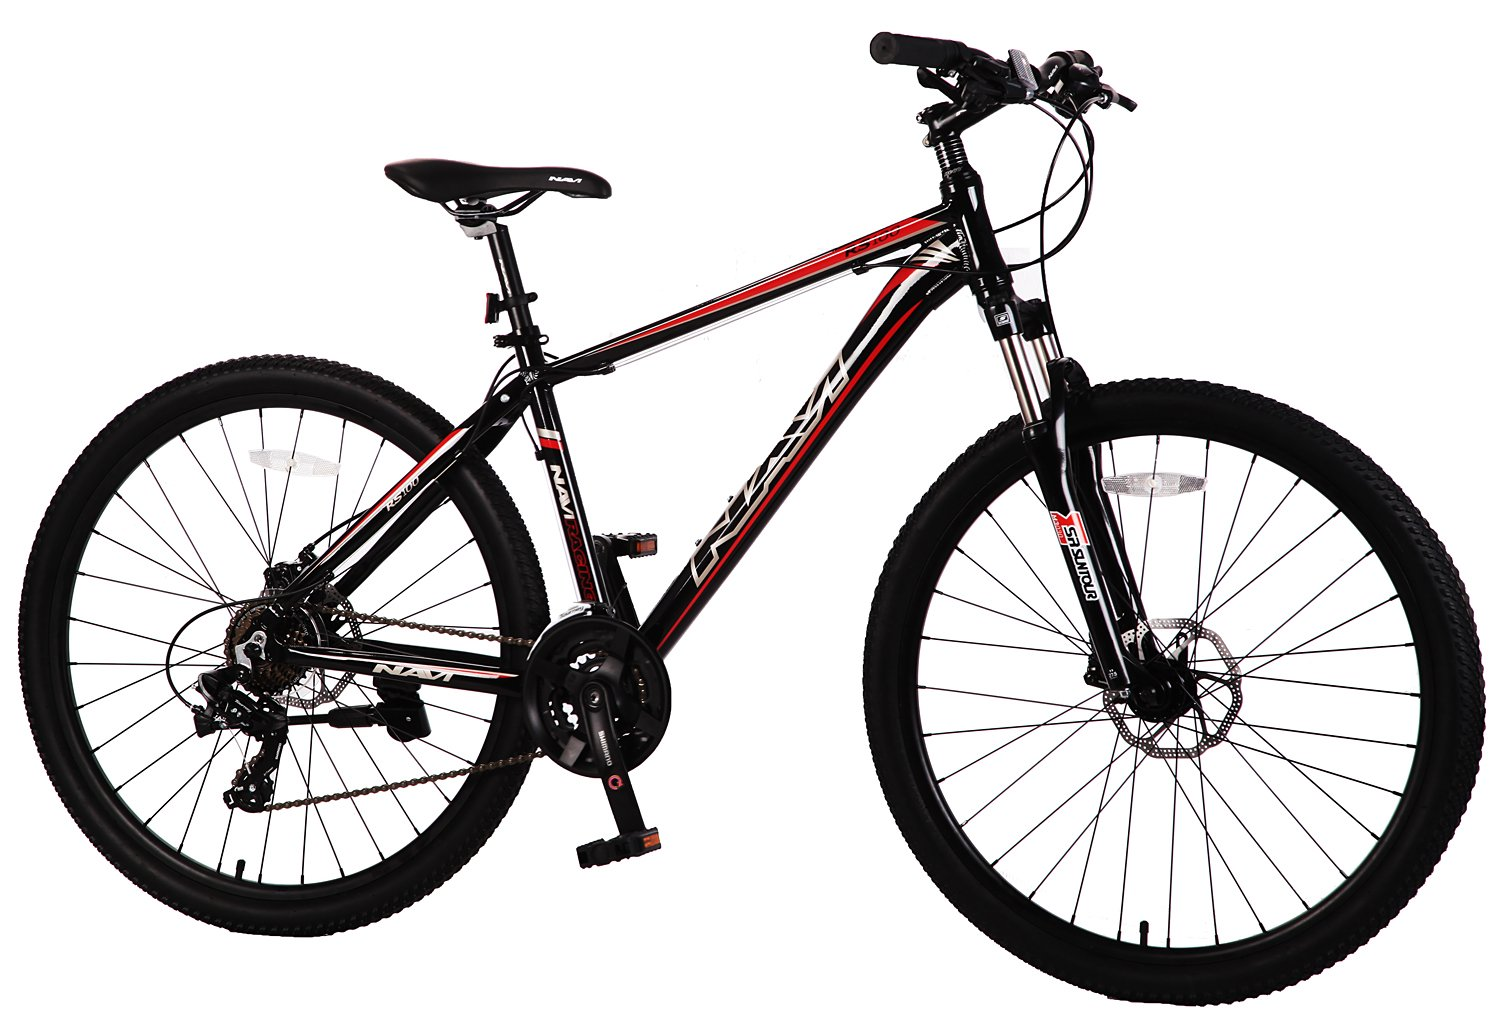 "Navi RS100 Hardtail Mountain Bike, Aluminum Alloy Frame, Disc Brakes, Shimano Tourney 21-speed, 27.5"" Wheel Mountain Bike (BLACK / RED)"